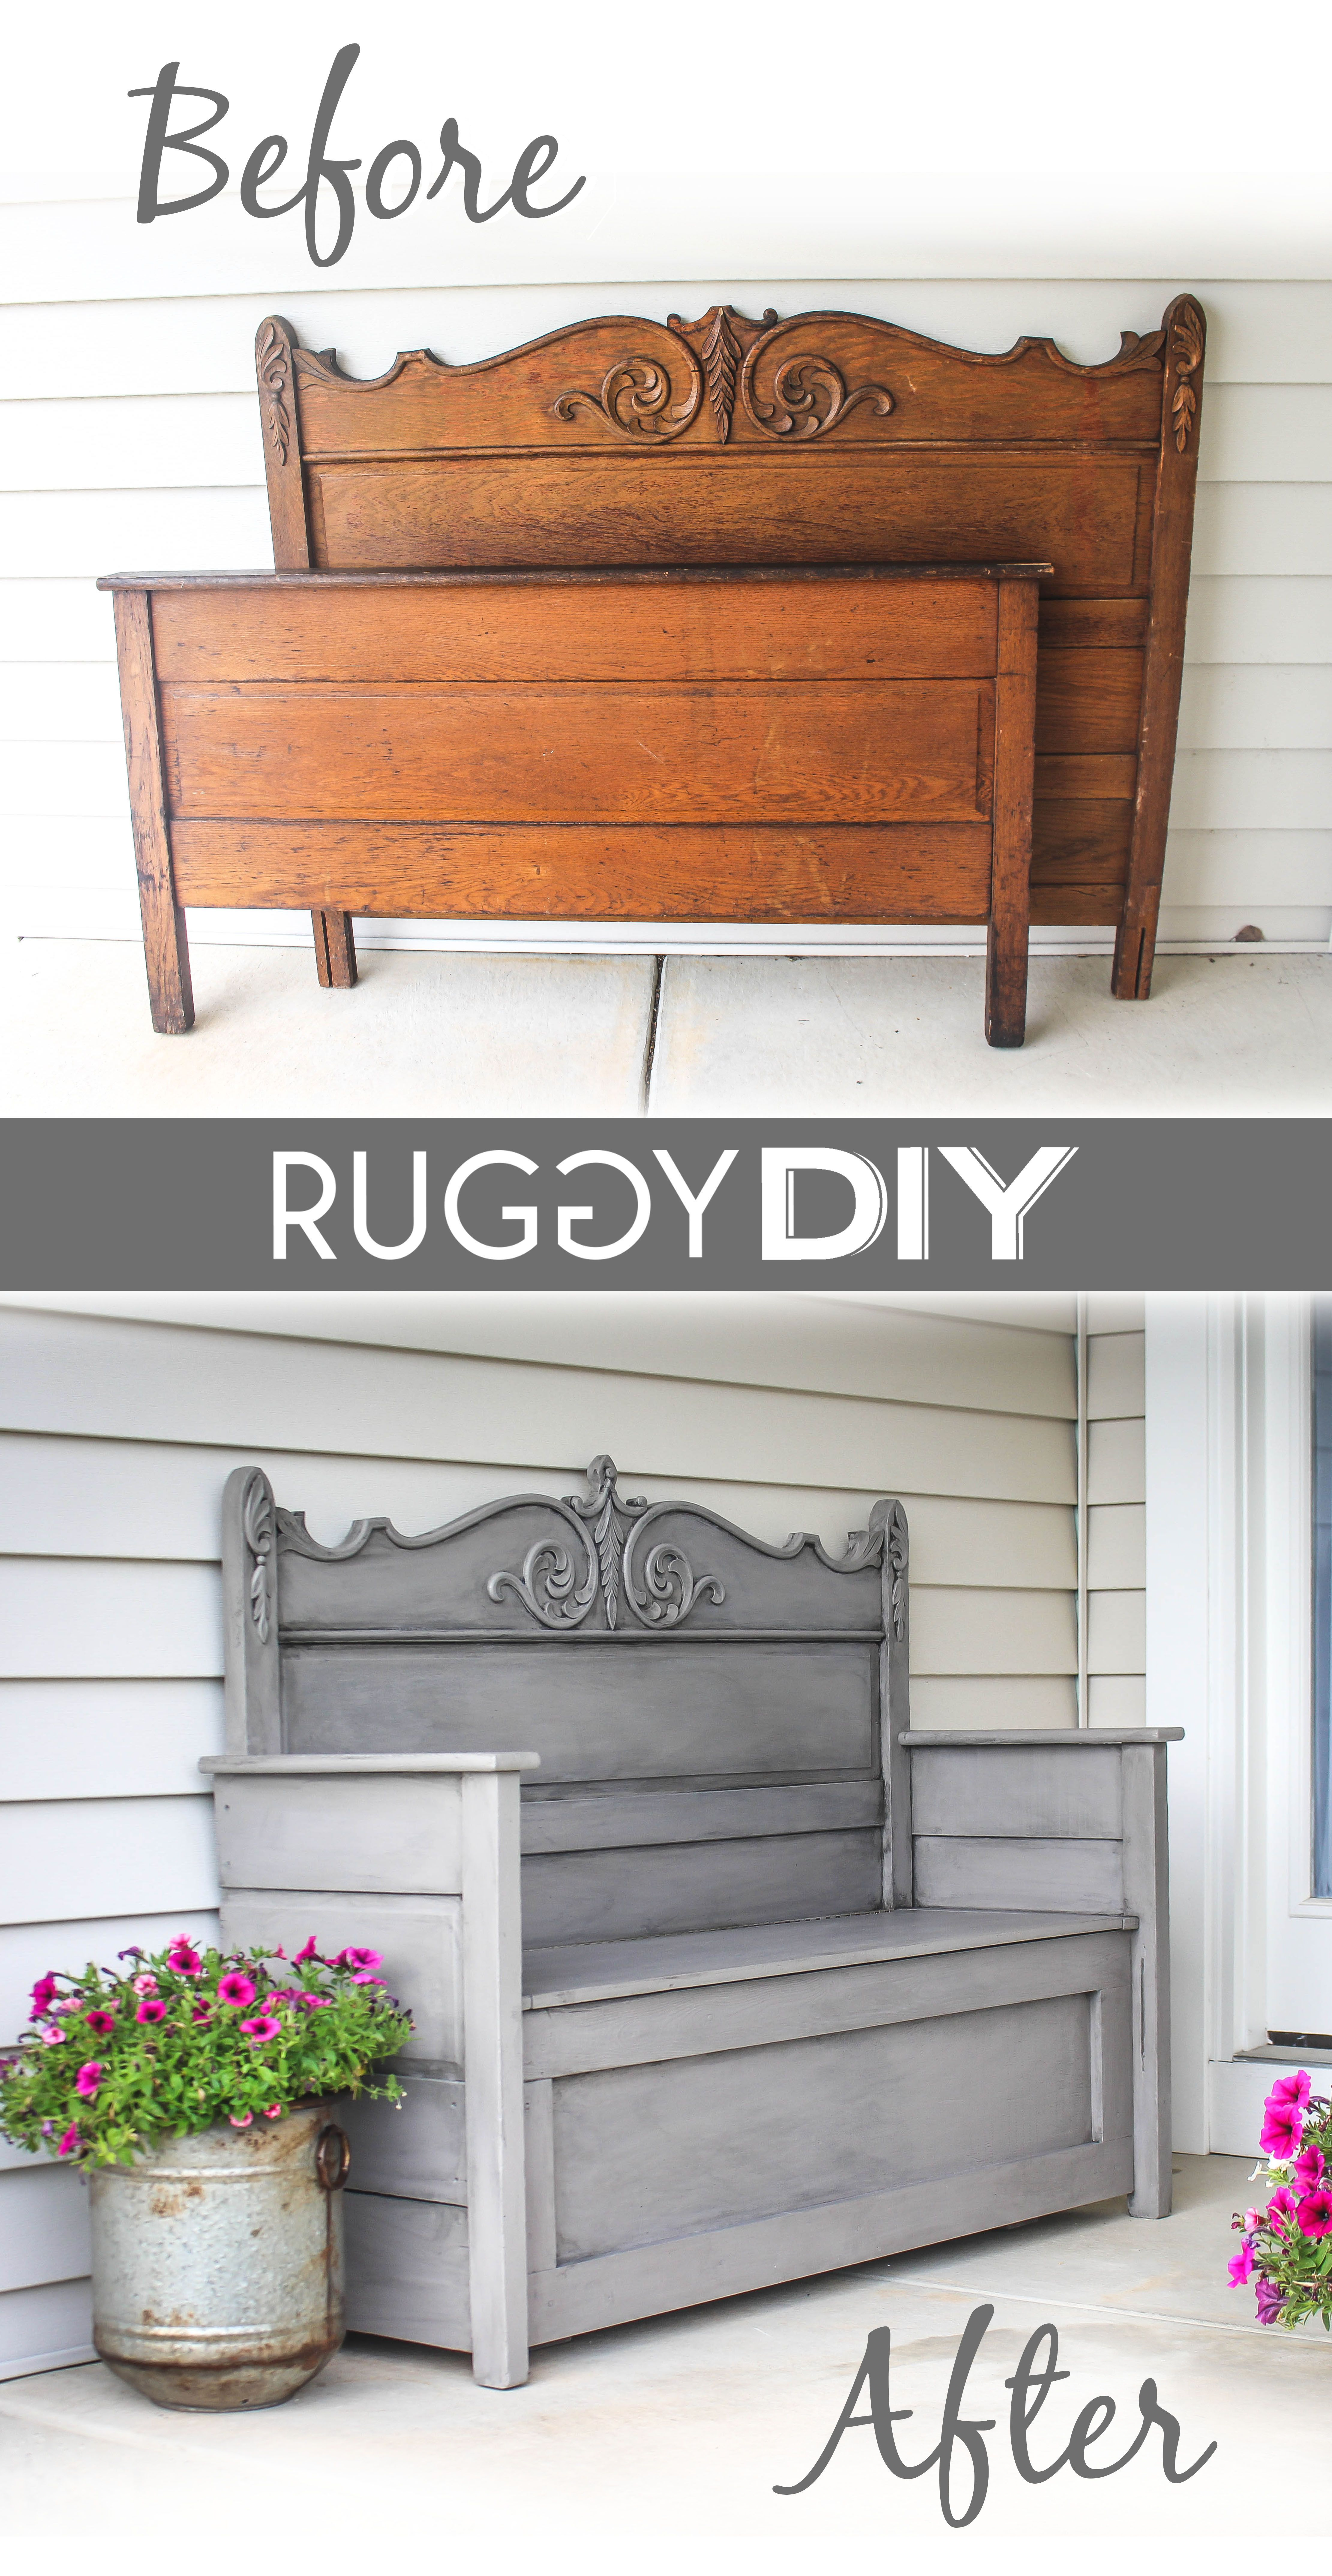 Headboard Bench Plans Diy Simple Instructions For Making A Bed Into A Bench